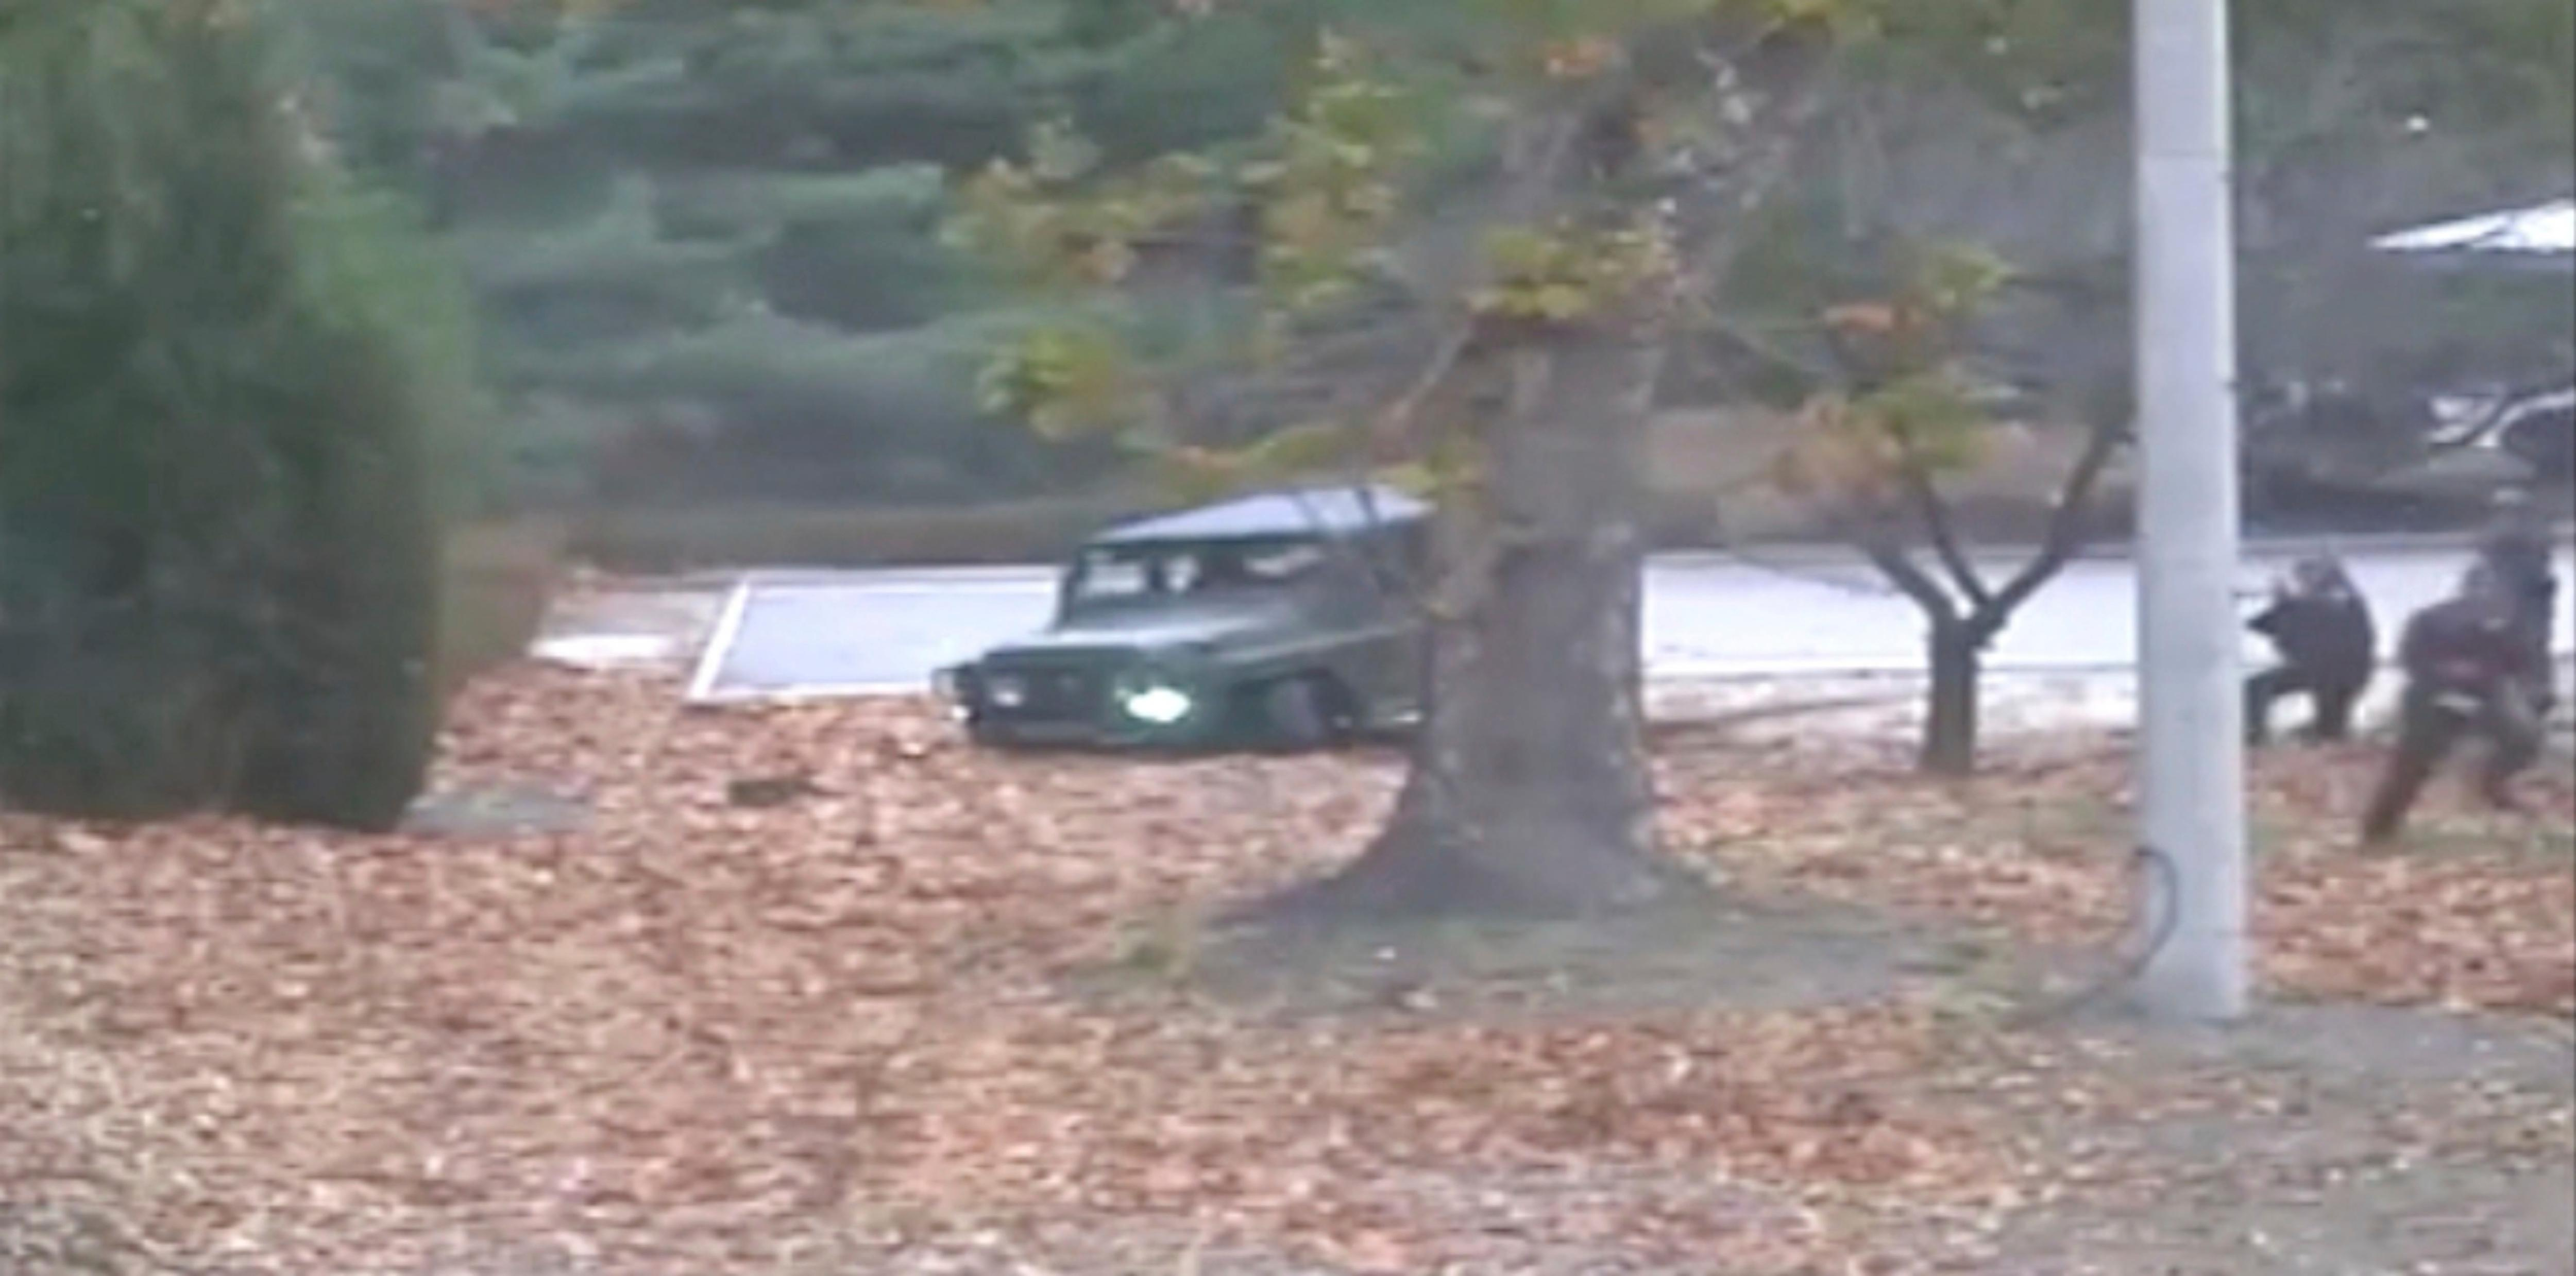 This image made from Nov. 13, 2017, surveillance video released by the United Nations Command shows a North Korean soldier running from a jeep and later shot by North Korean soldiers in Panmunjom, North Korea. A North Korean soldier made a desperate dash to freedom in a jeep and then on foot, being shot at least five times as he limped across the border and was rescued by South Korean soldiers, according to dramatic video released by the U.S.-led U.N. command Wednesday, Nov. 22, 2017. (United Nations Command via AP)